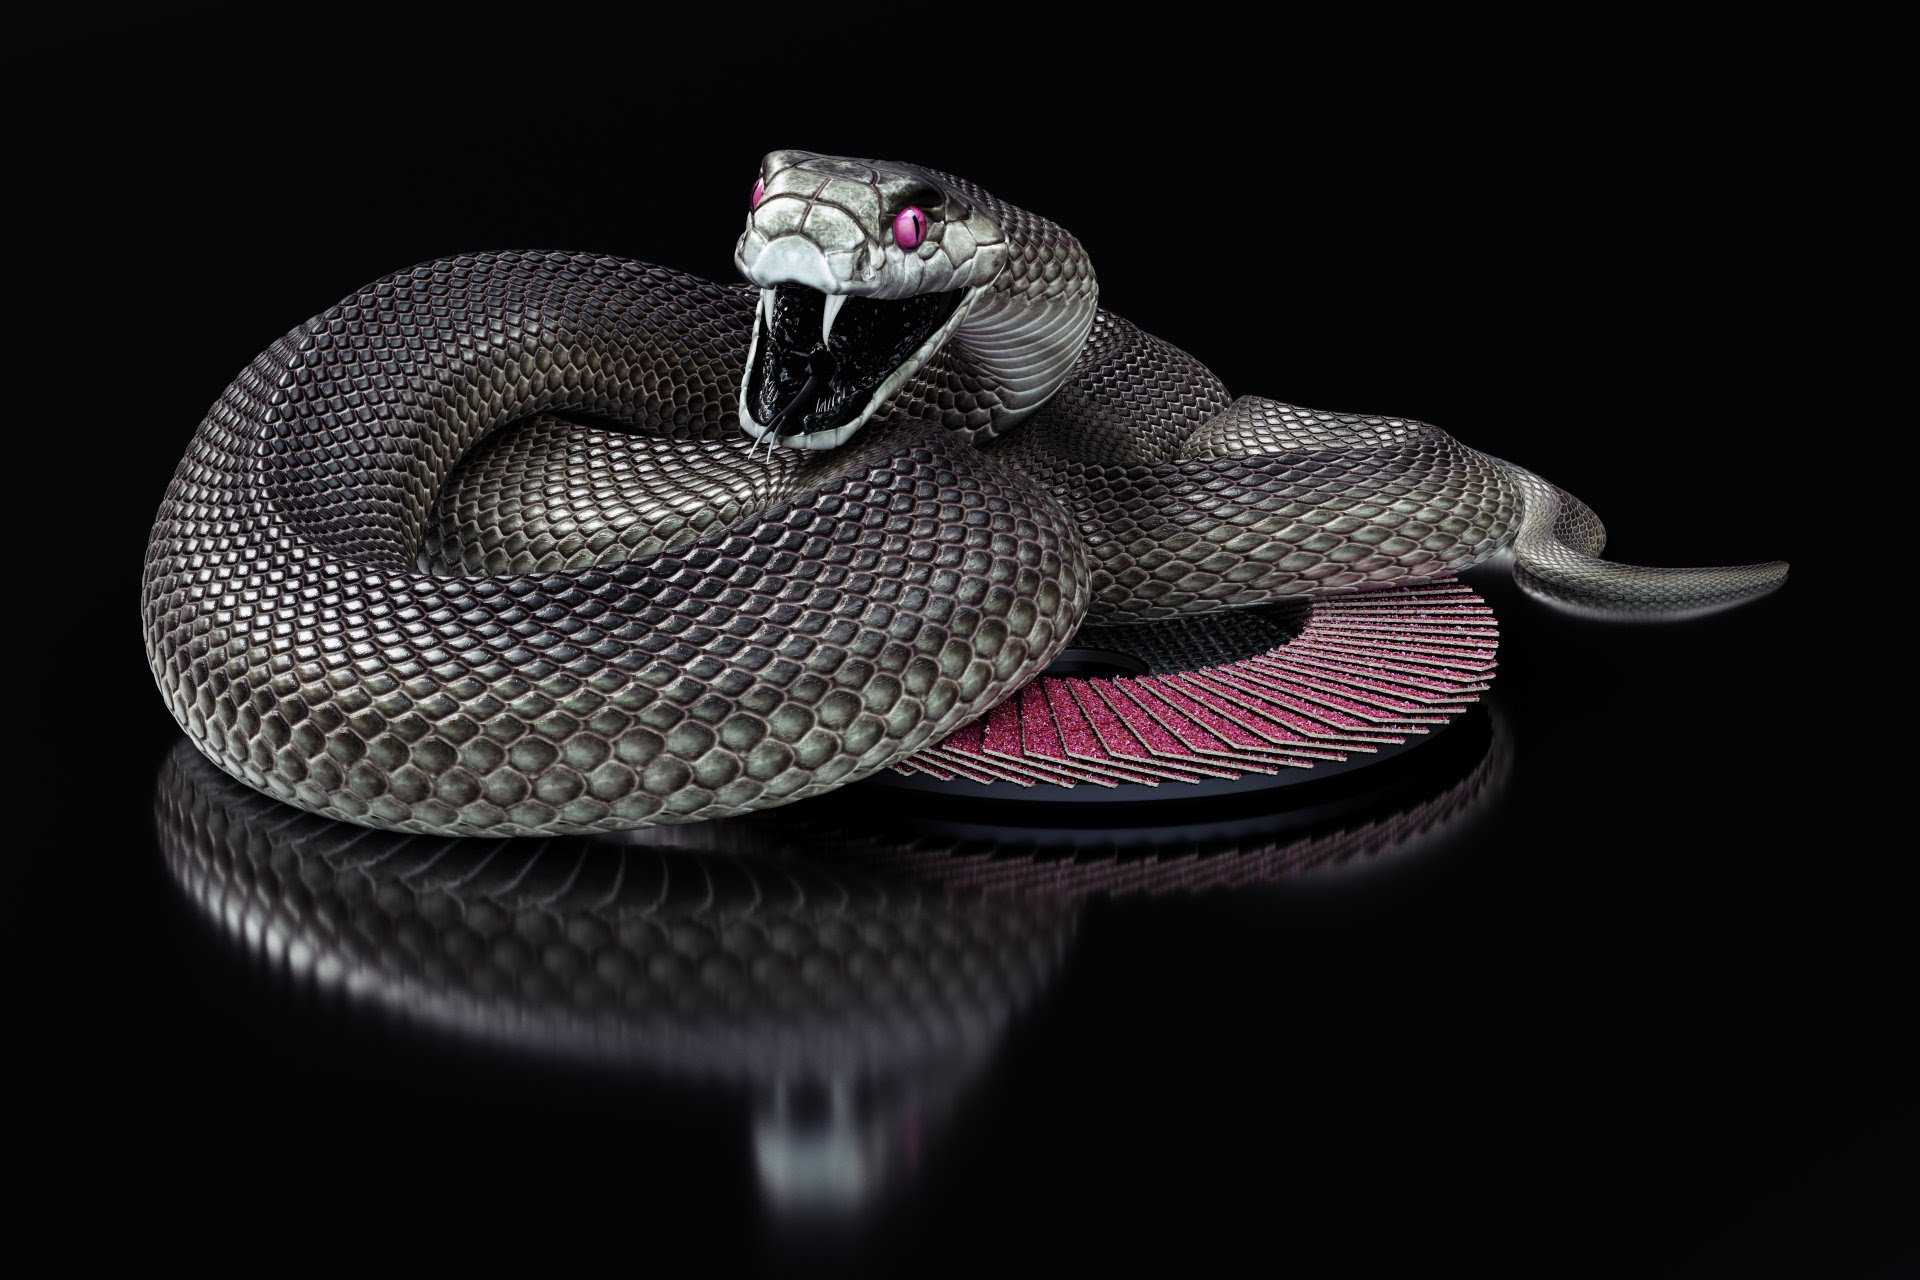 Black Mamba Wallpapers - Wallpaper Cave